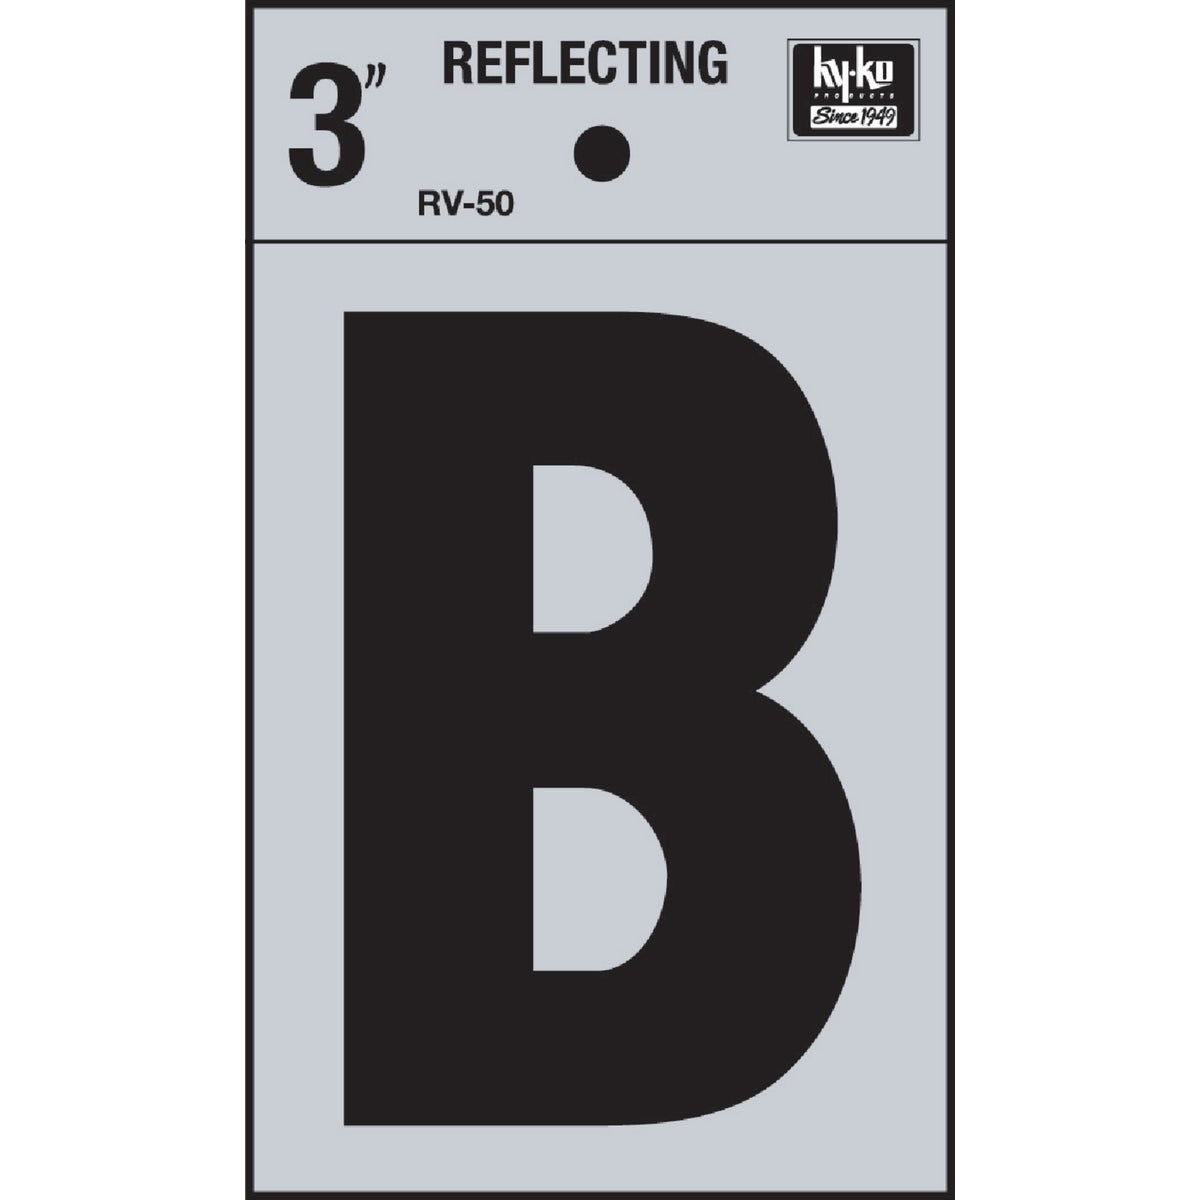 "3"" REFLECT LETTER B - RV-50B by Hy Ko Prods Co"